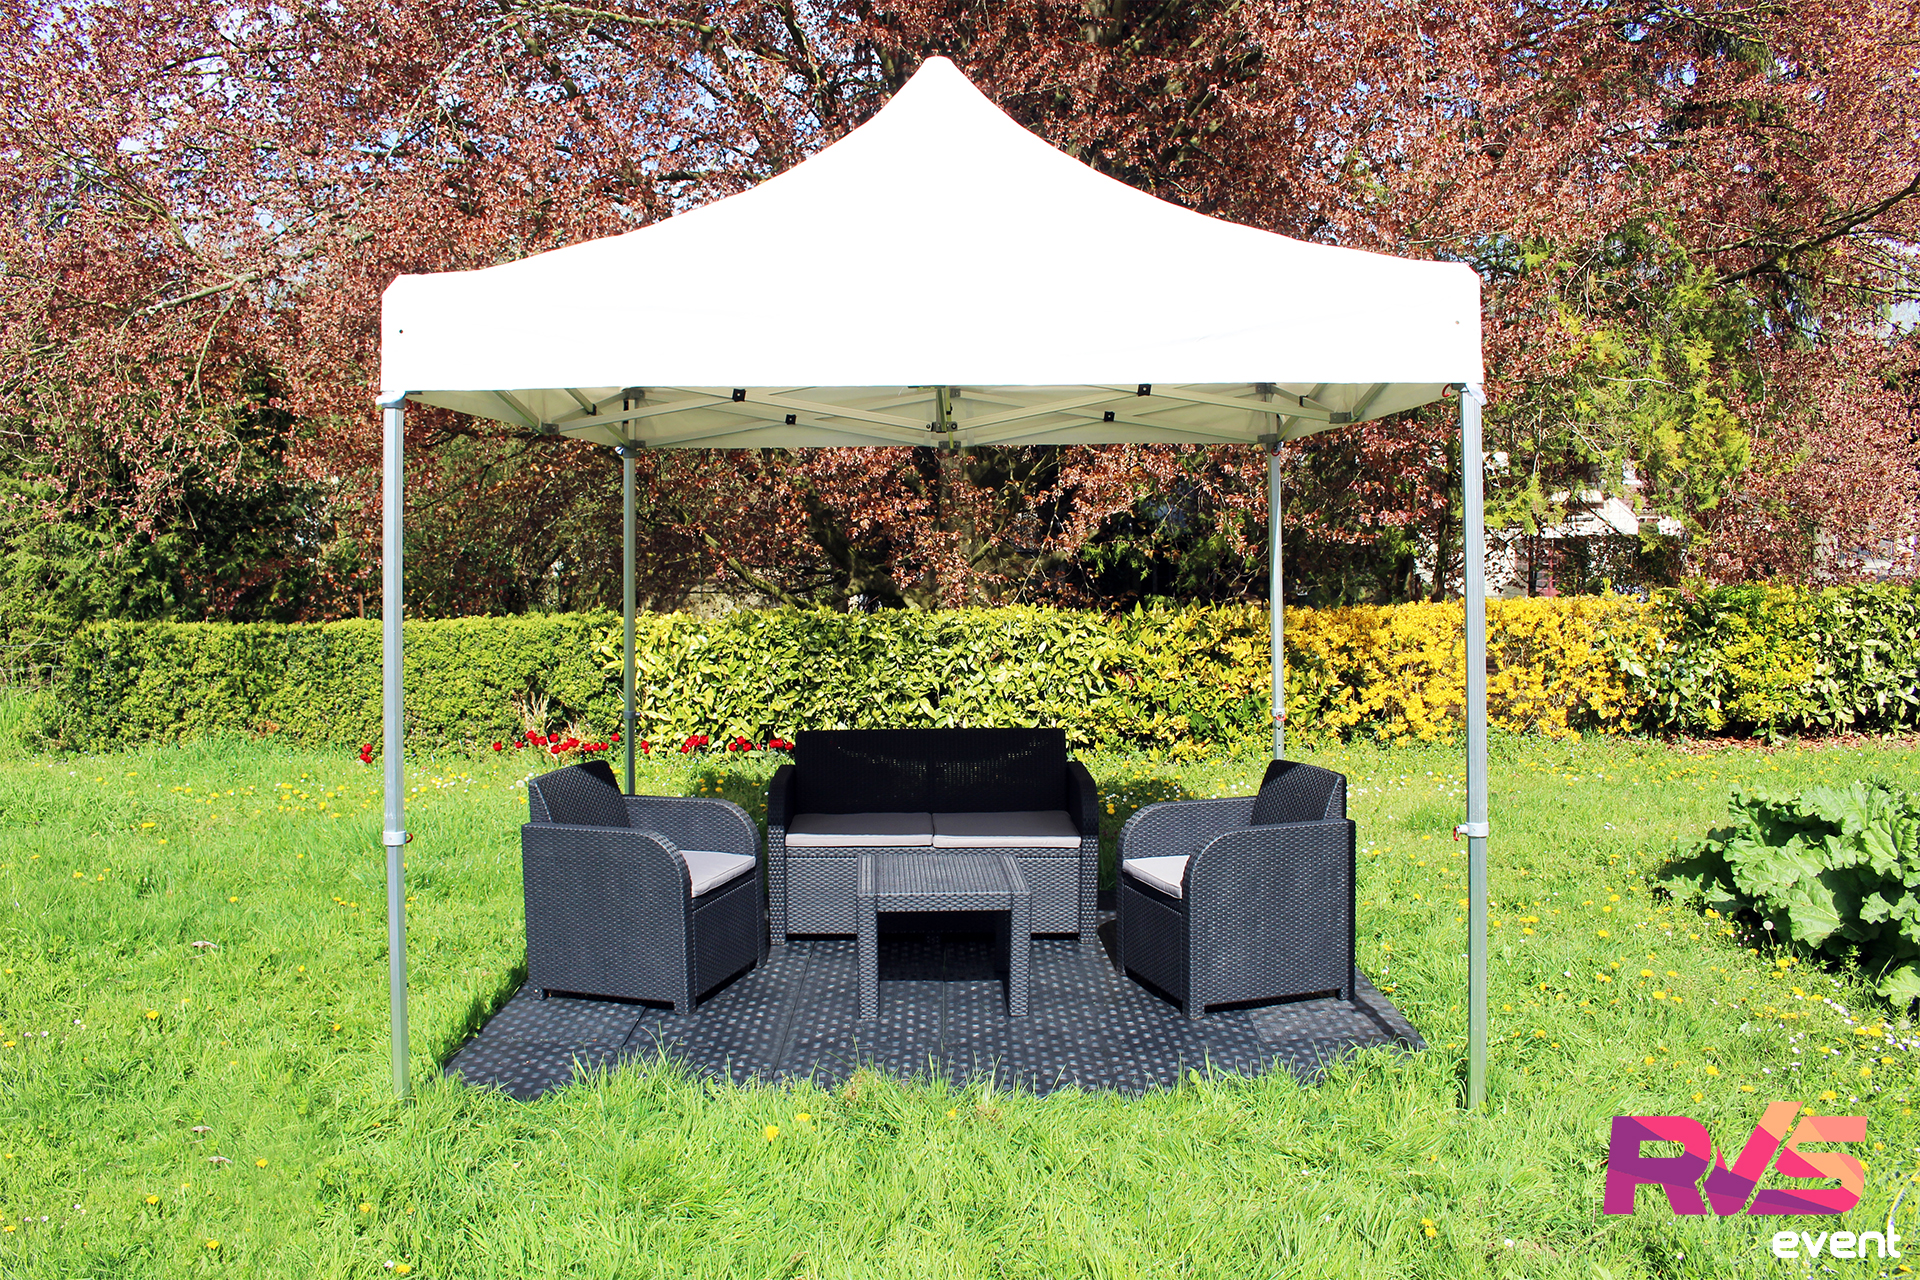 location tentes 3x3 pliantes rvs event. Black Bedroom Furniture Sets. Home Design Ideas